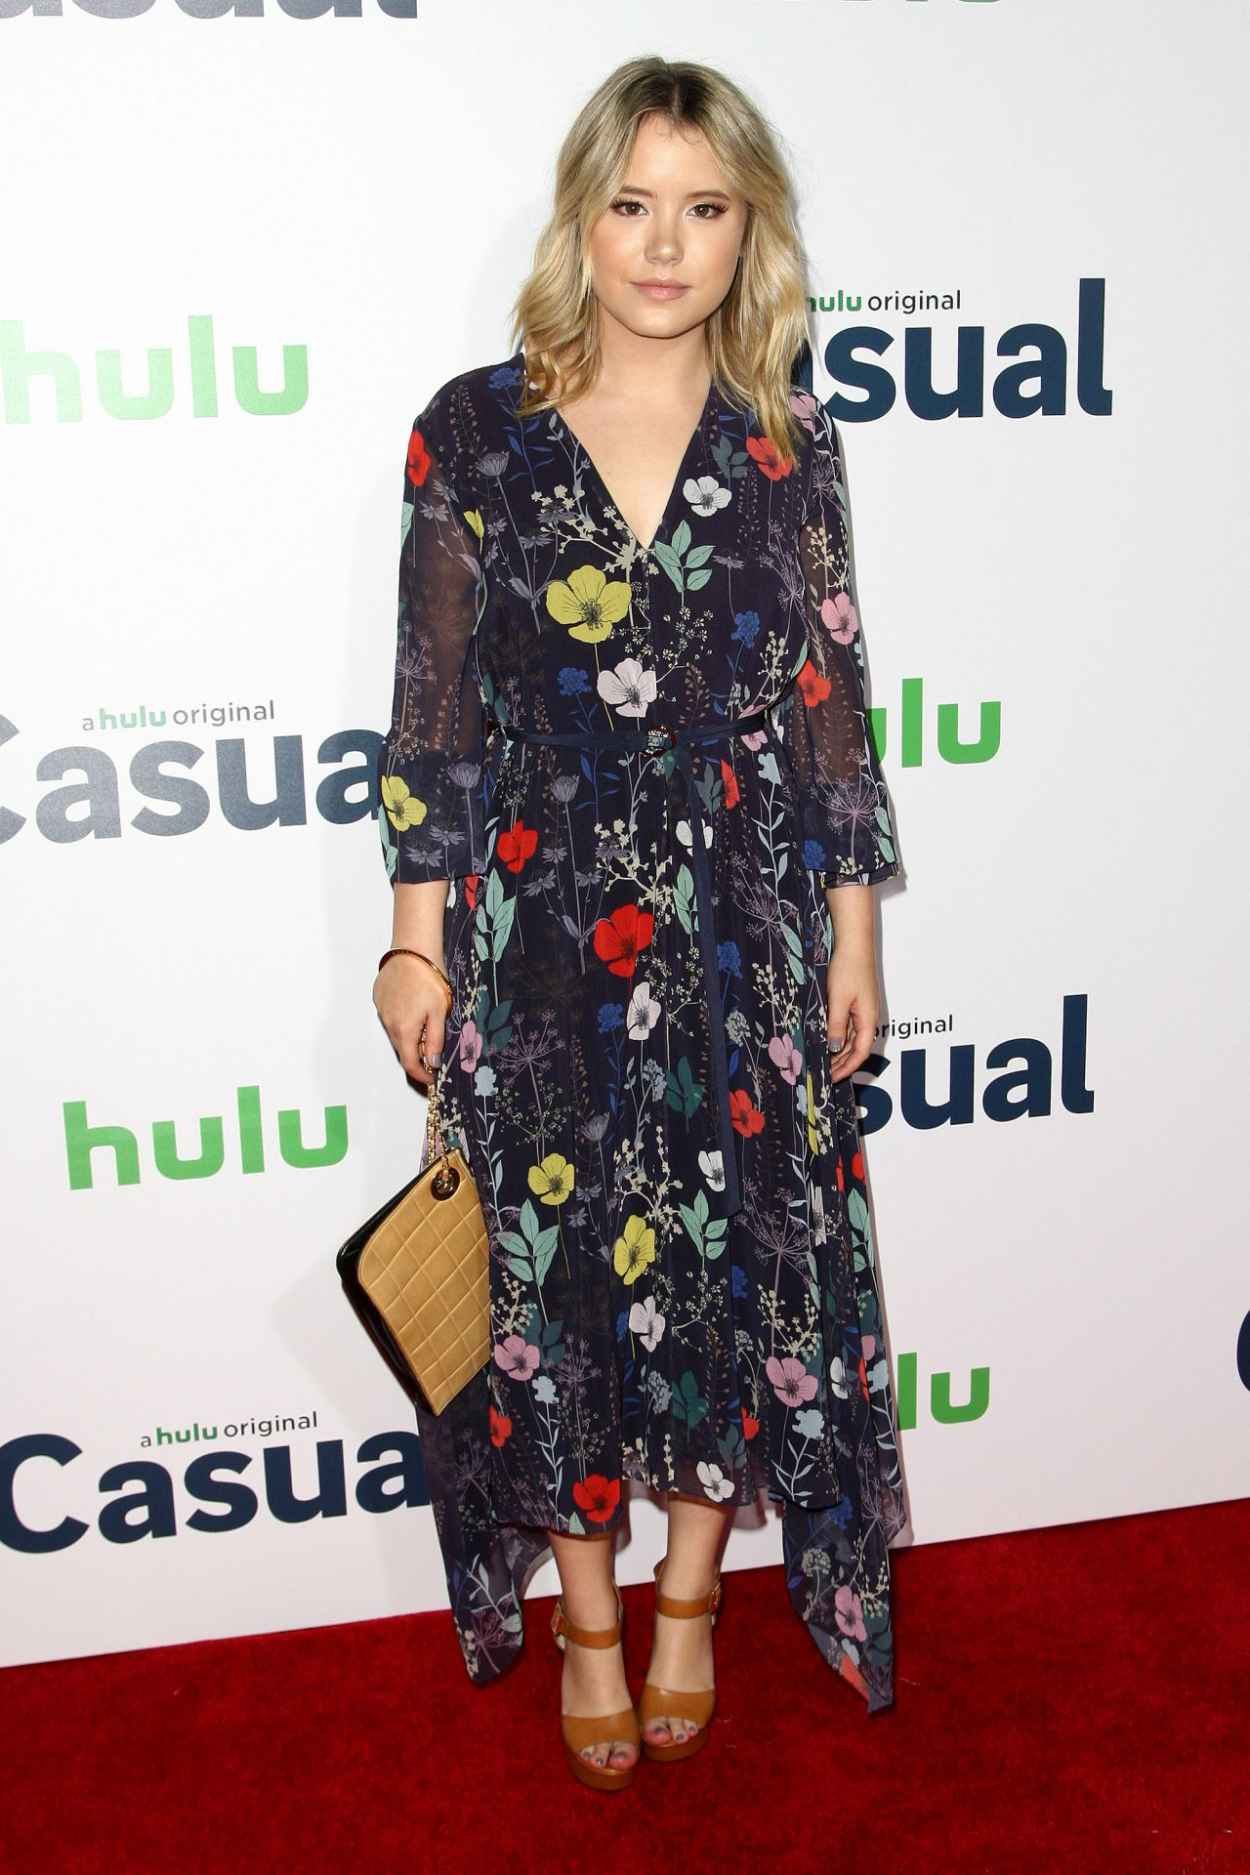 Taylor Spreitler - Hulu Original Casual Premiere in West Hollywood-5